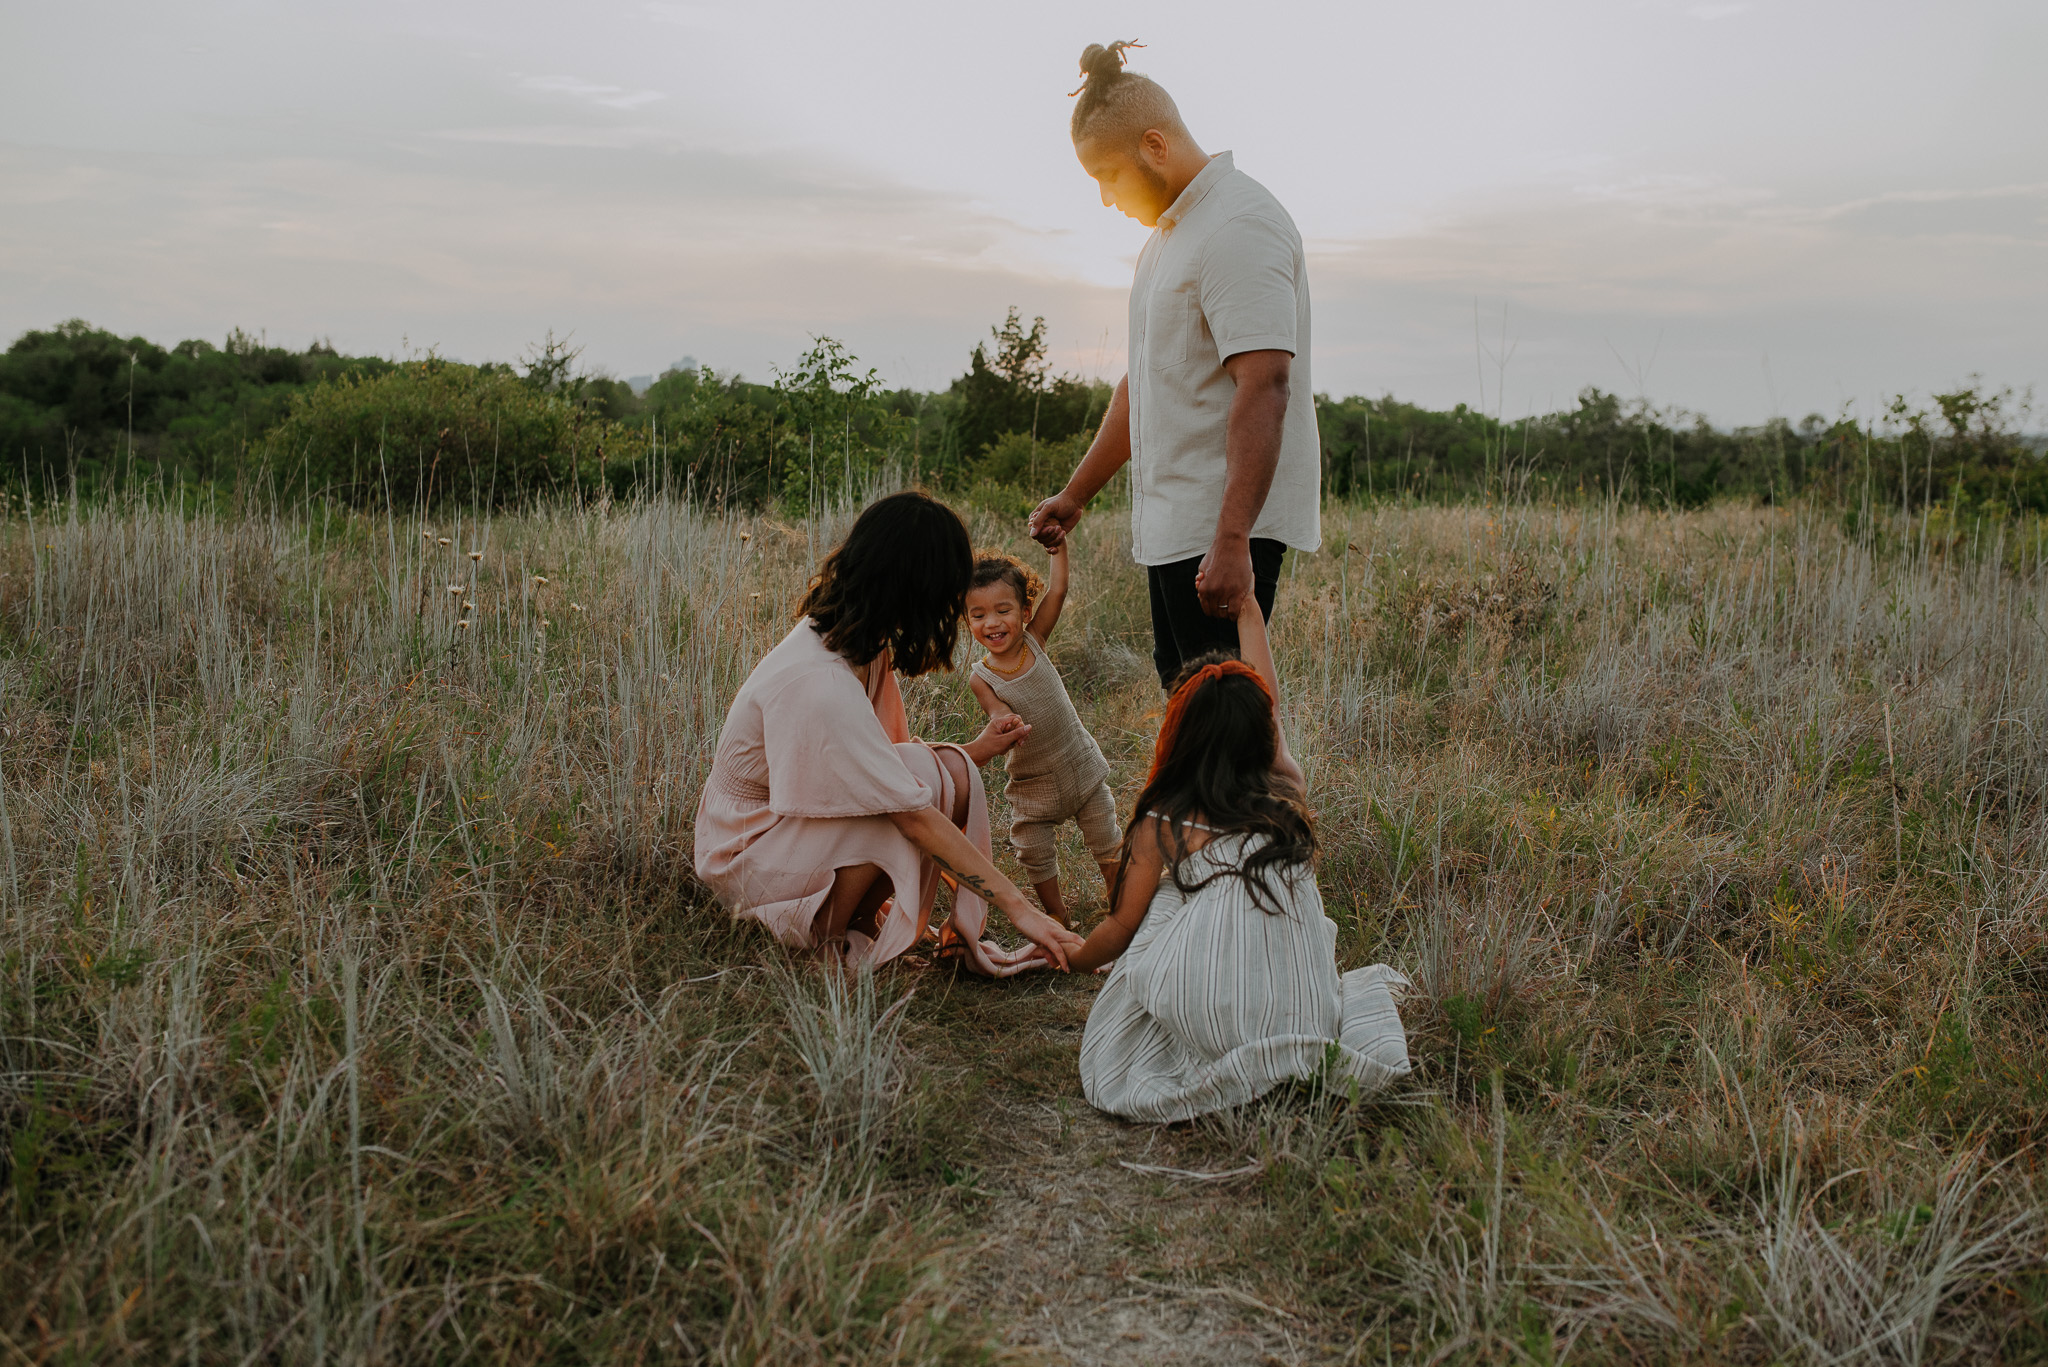 Jessi-marie-photography-dallas-fort-worth-texas-family-photographer-tandy-hills-natural-area-24